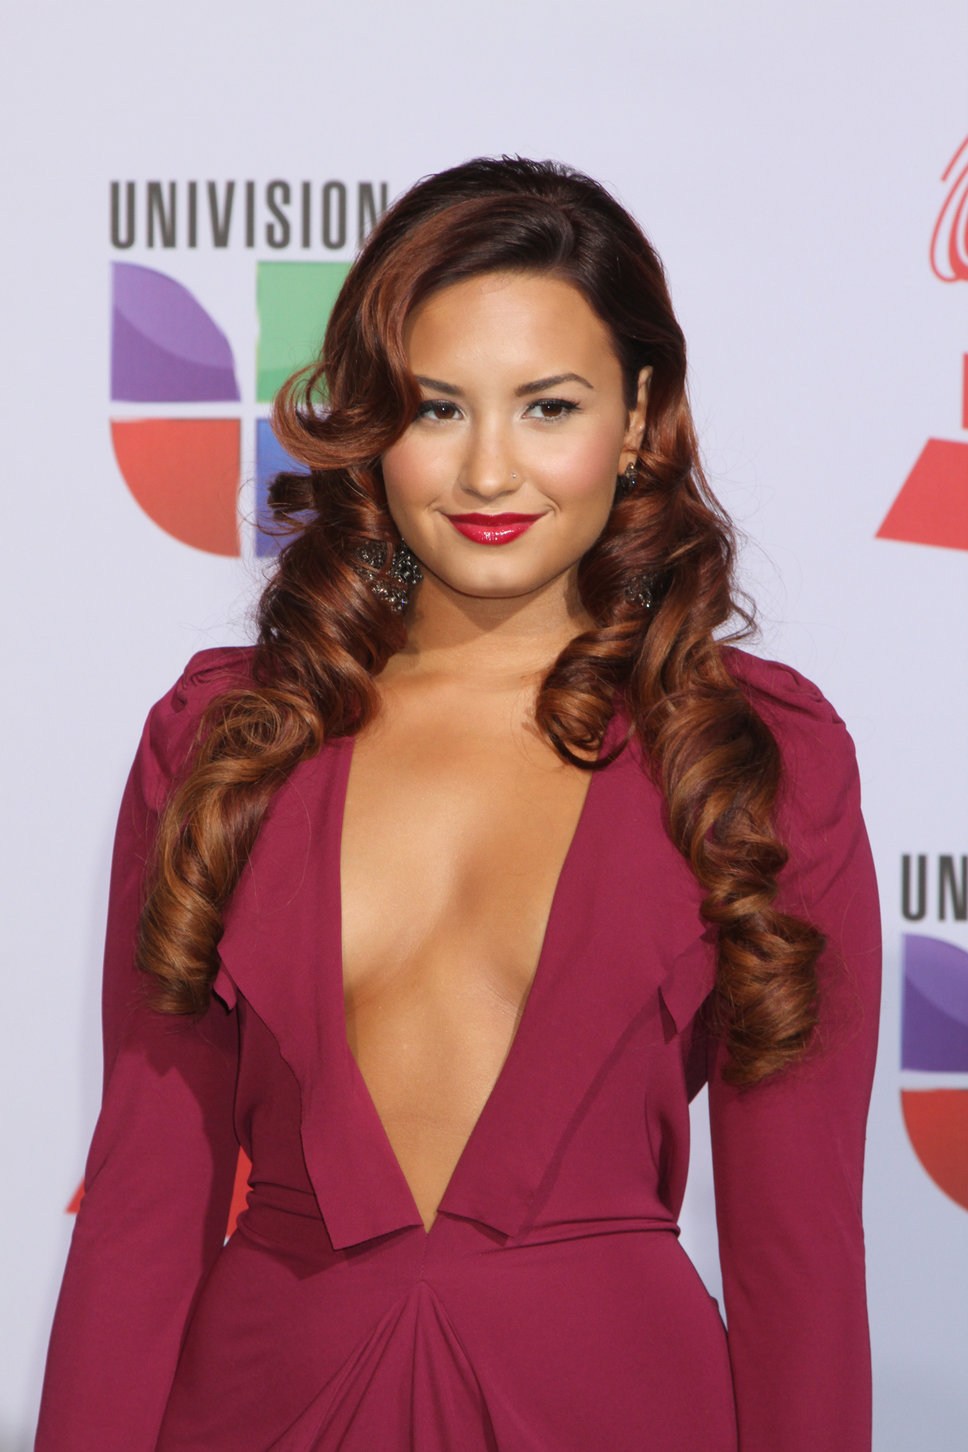 Demi Lovato Sexiest Instagram Pictures: Hot And Beautiful Women Of The World